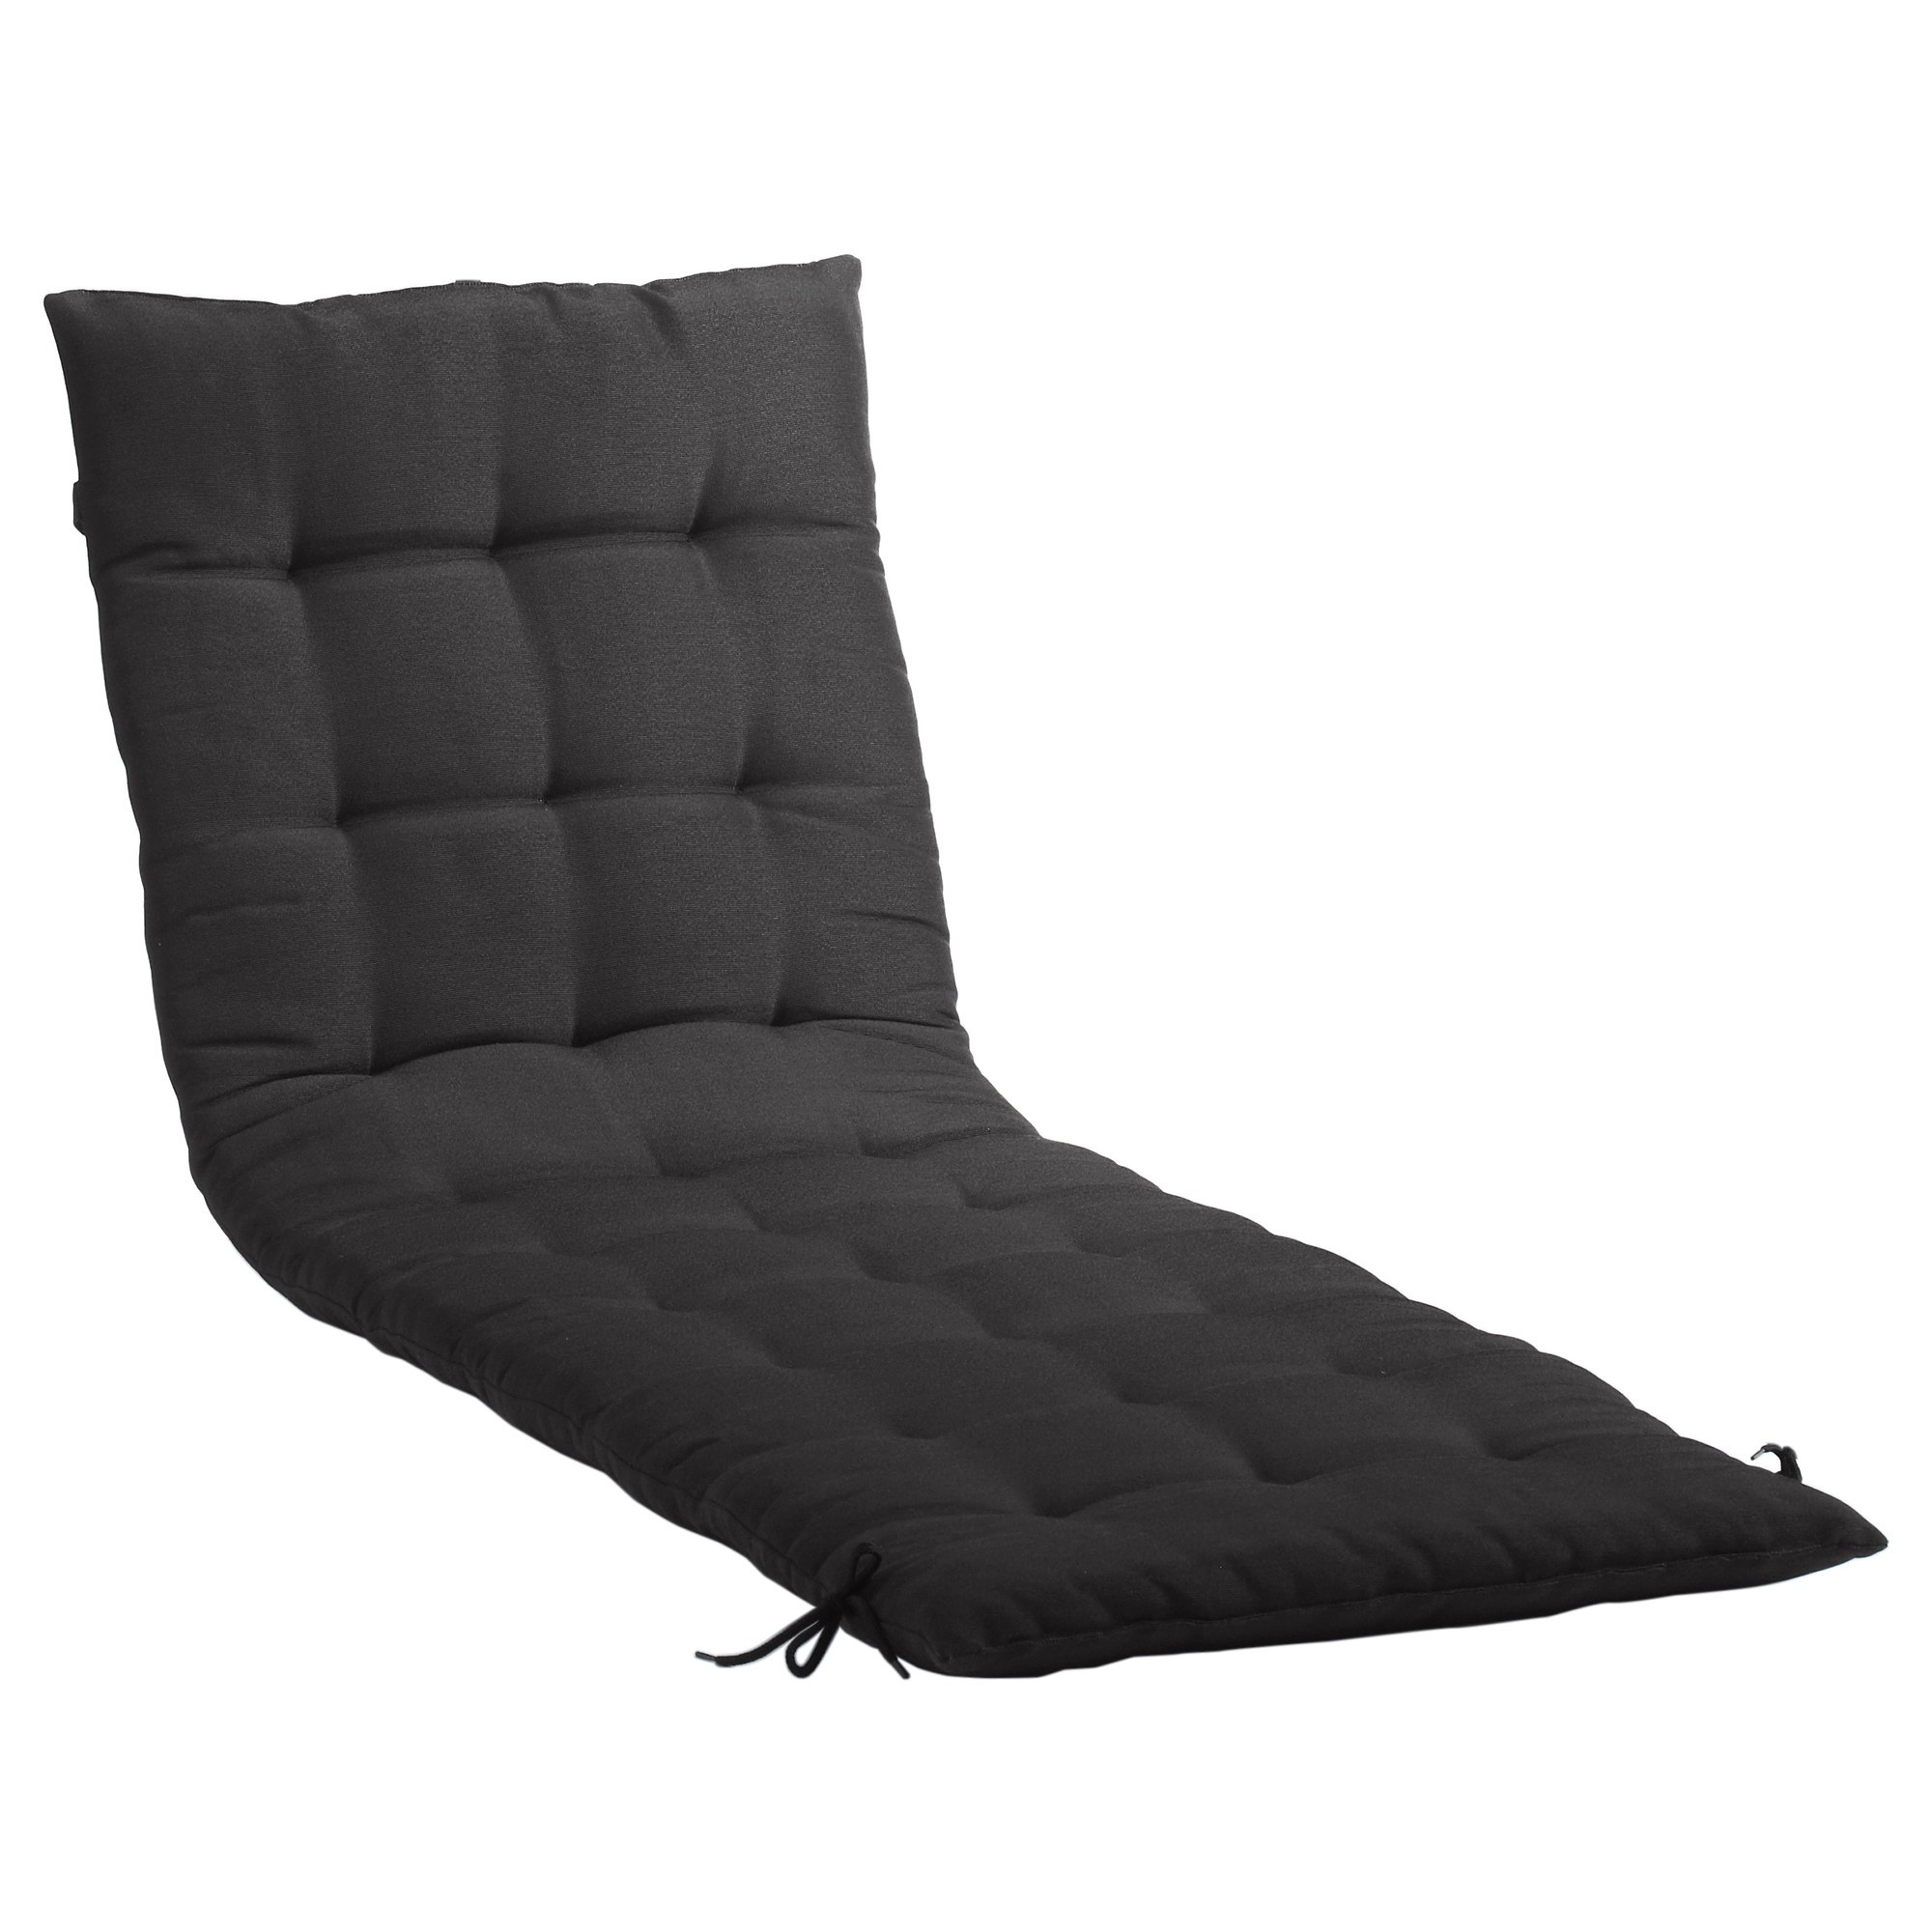 ikea coussin de chaise finest galette with ikea coussin. Black Bedroom Furniture Sets. Home Design Ideas